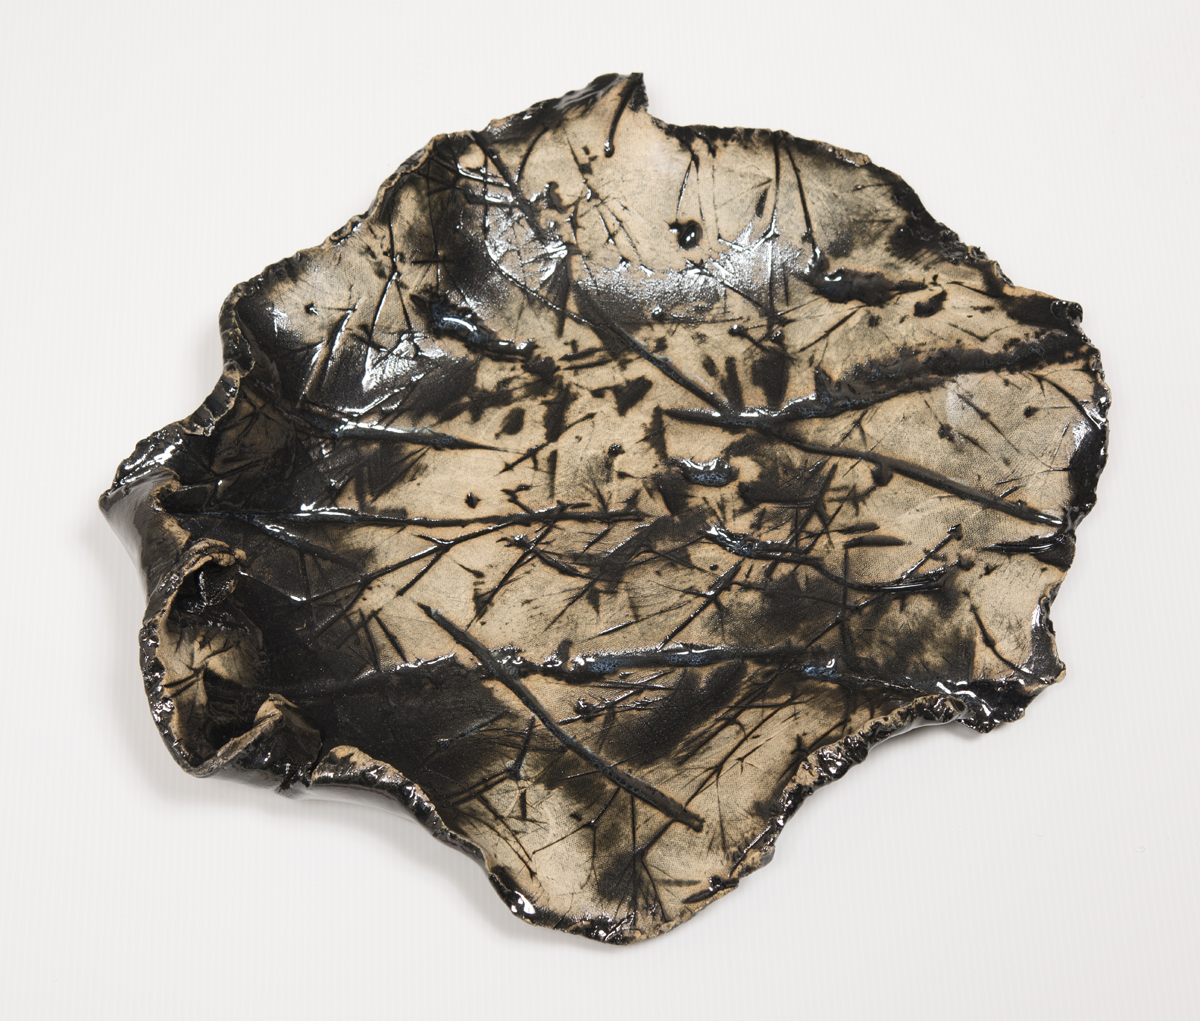 Alan Sonfist  Ceramic Relic of Hemlock Forest #5, 1971  High Fired Stoneware 18 x 15 inches